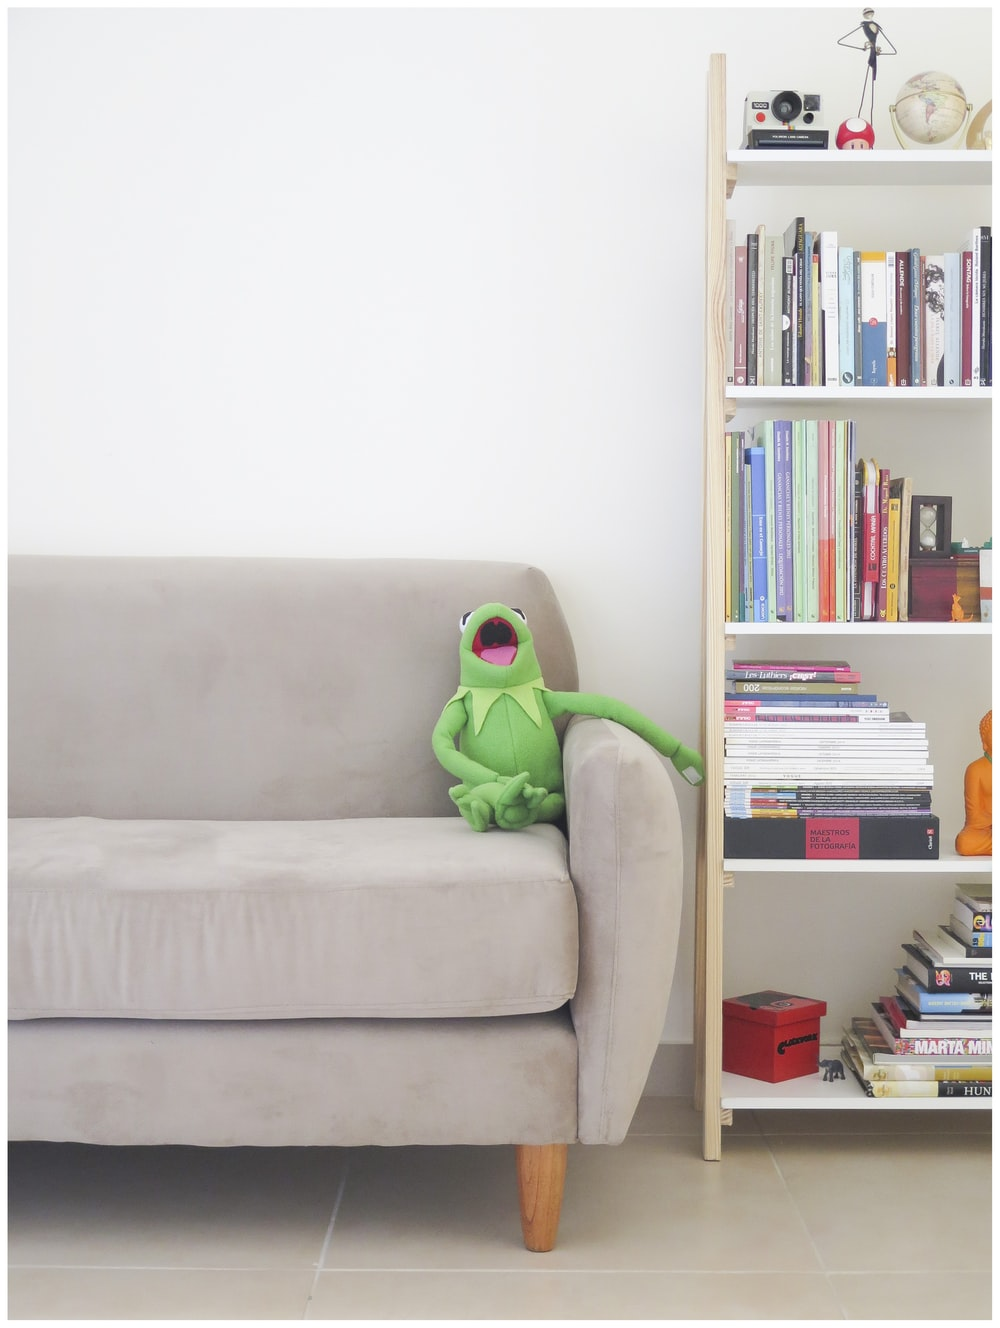 The Muppets Kermit plush toy on gray sofa